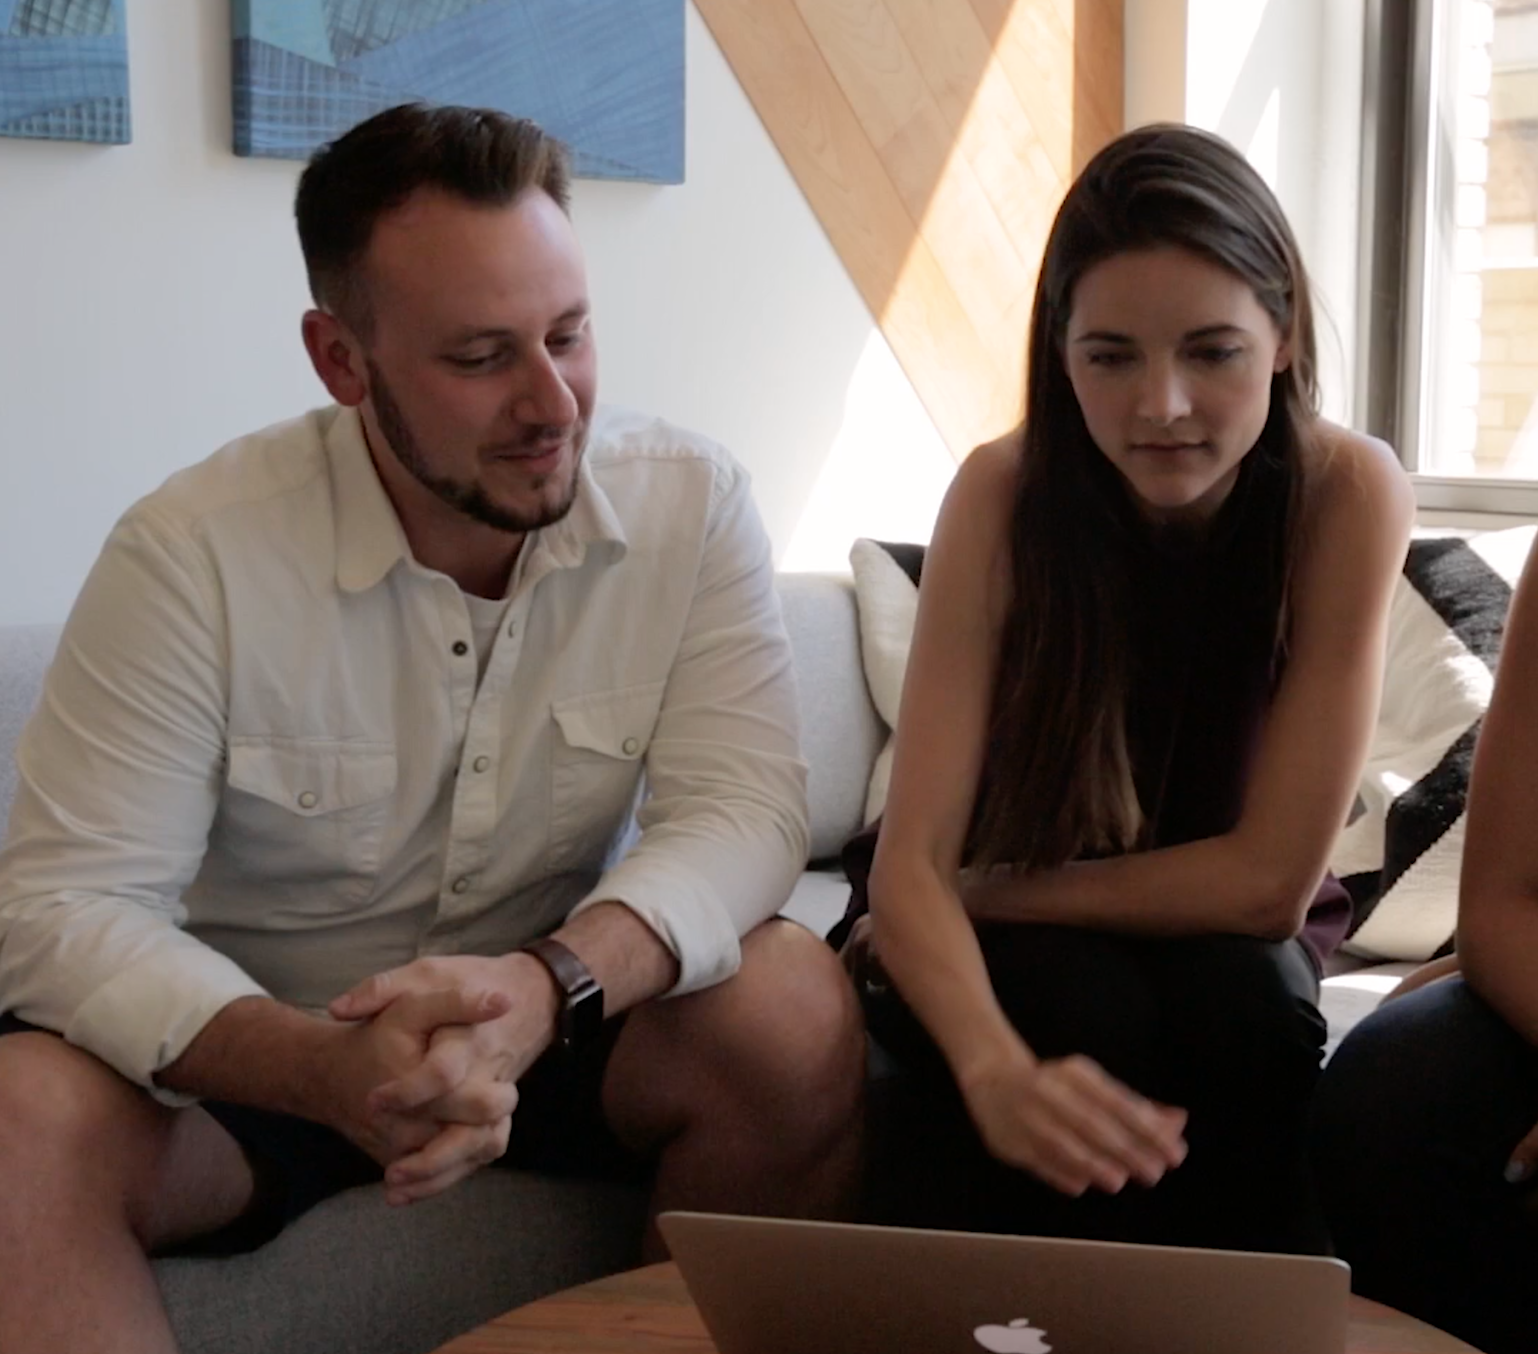 Galvanize + Silicon Valley Bank Release Fundraising Video Series